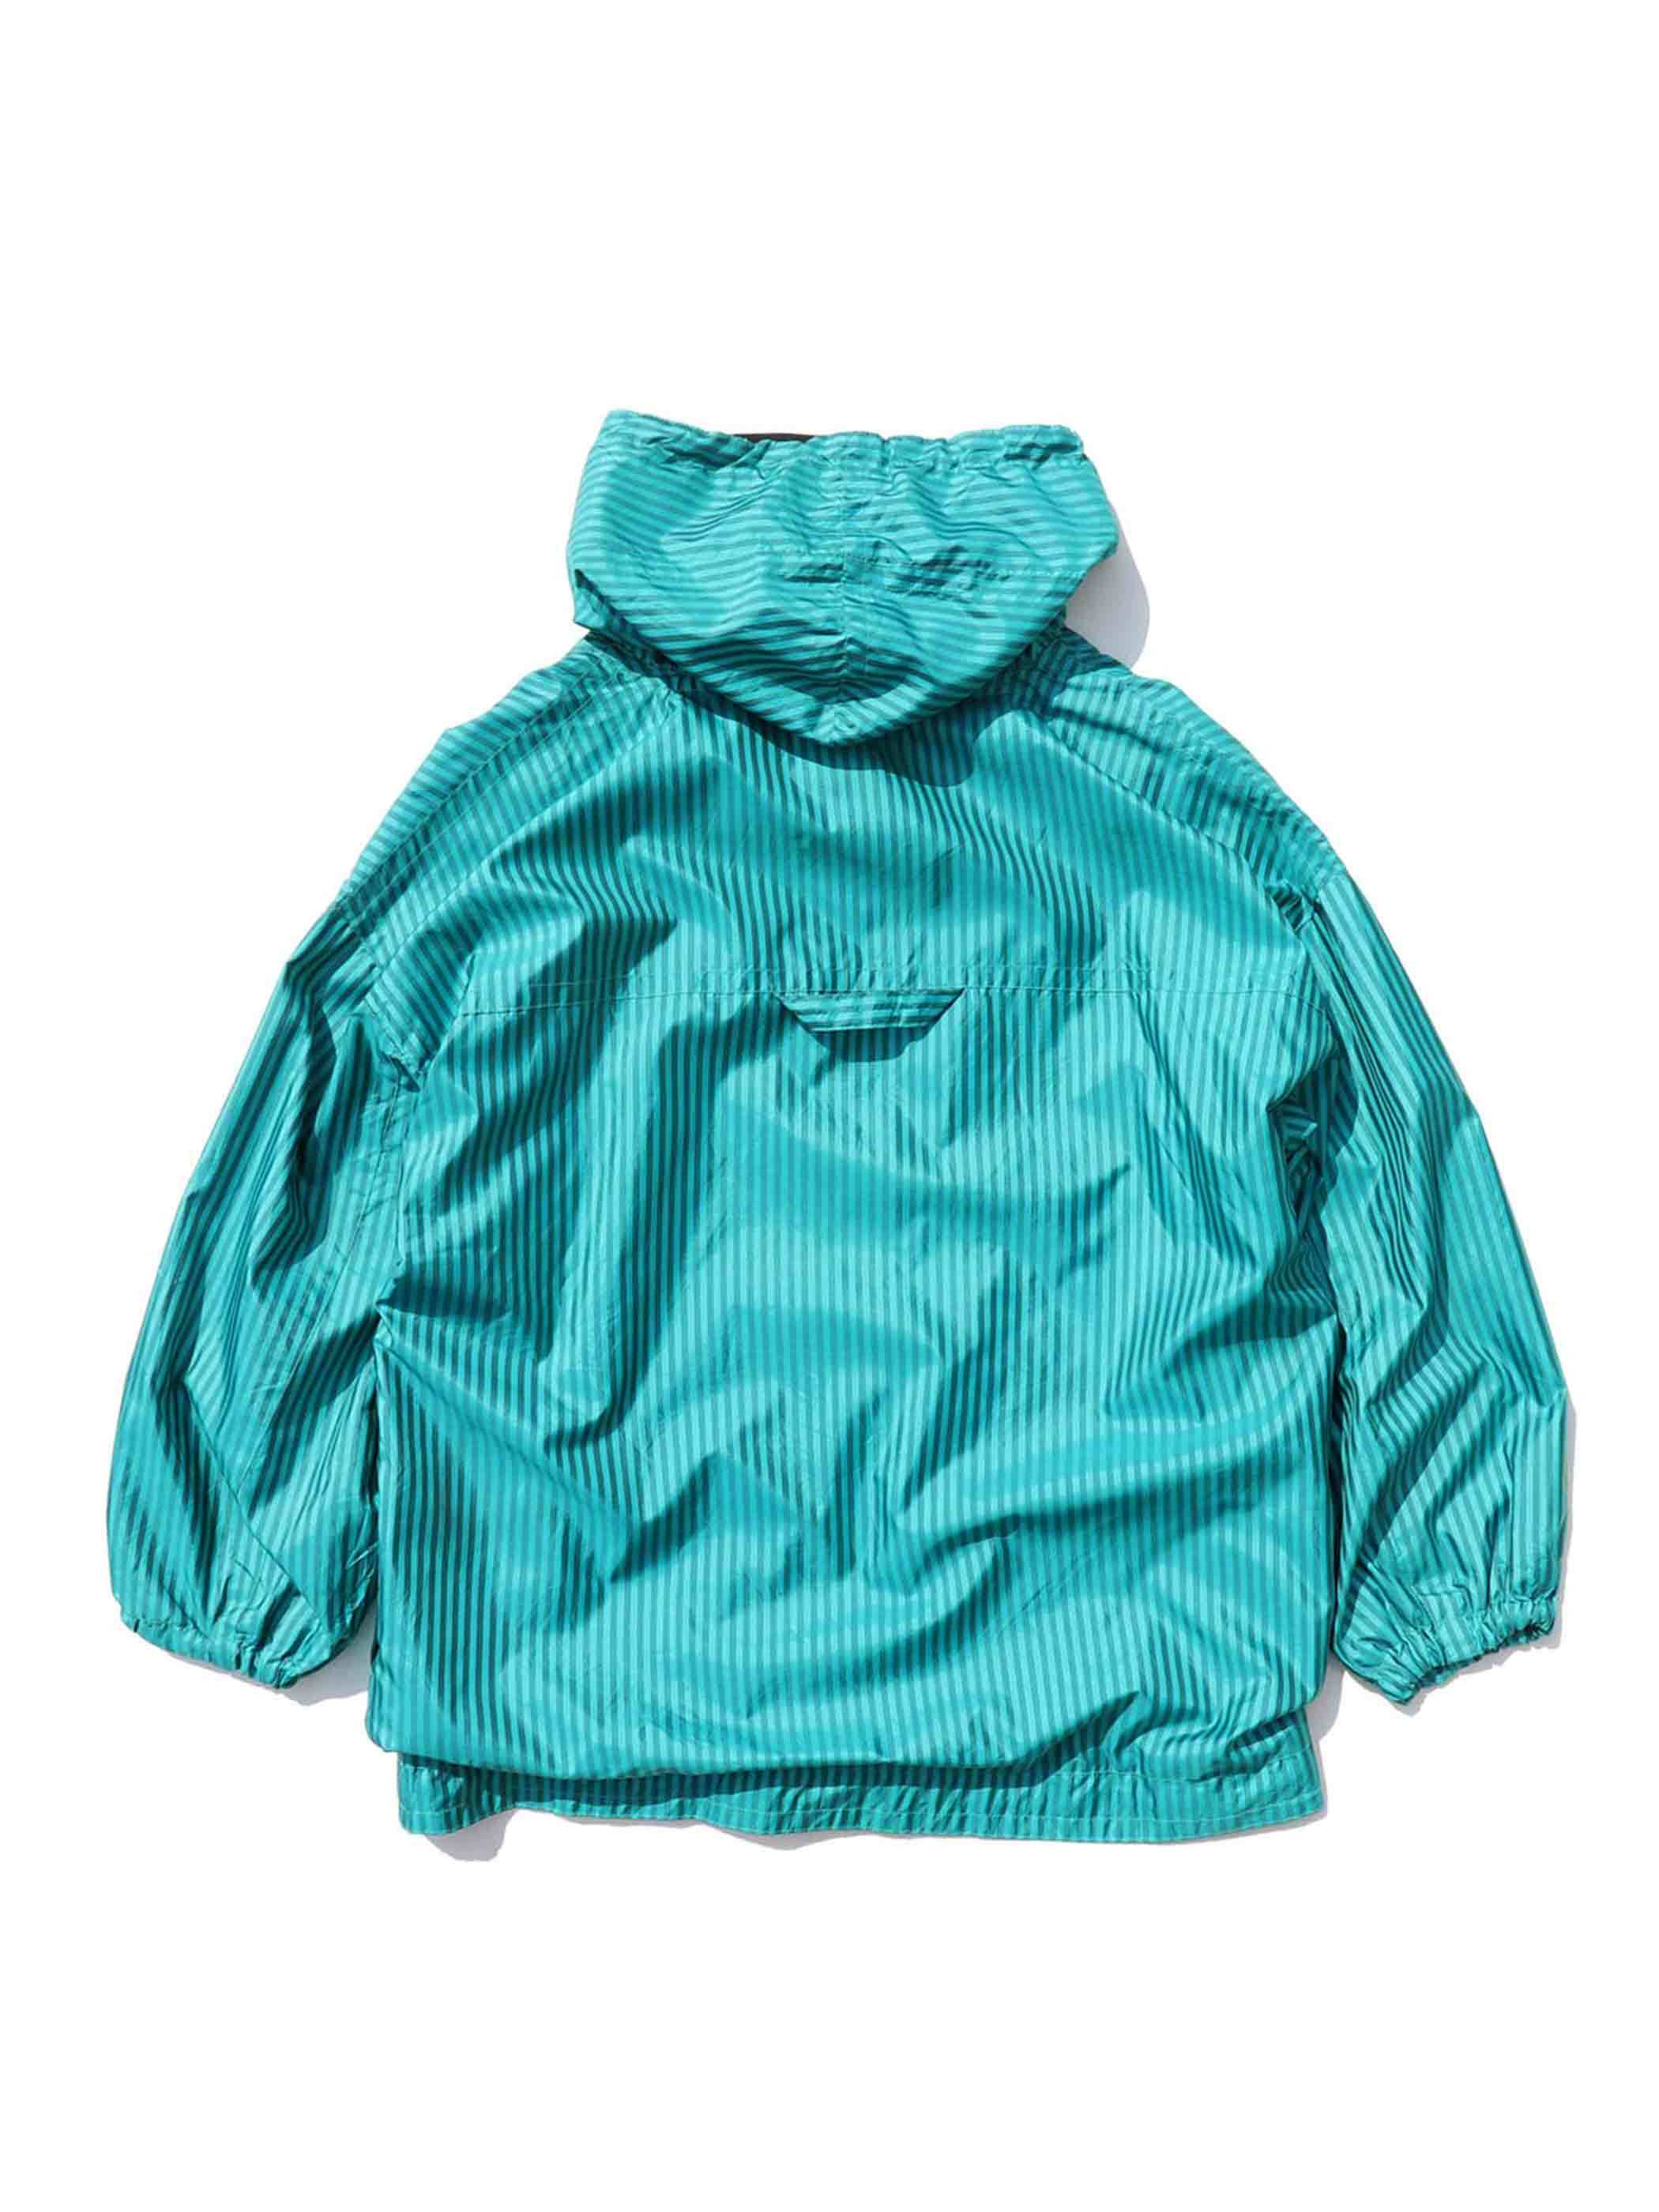 90's CLIMATE ZONE Striped Pullover Jacket [16-1/2]